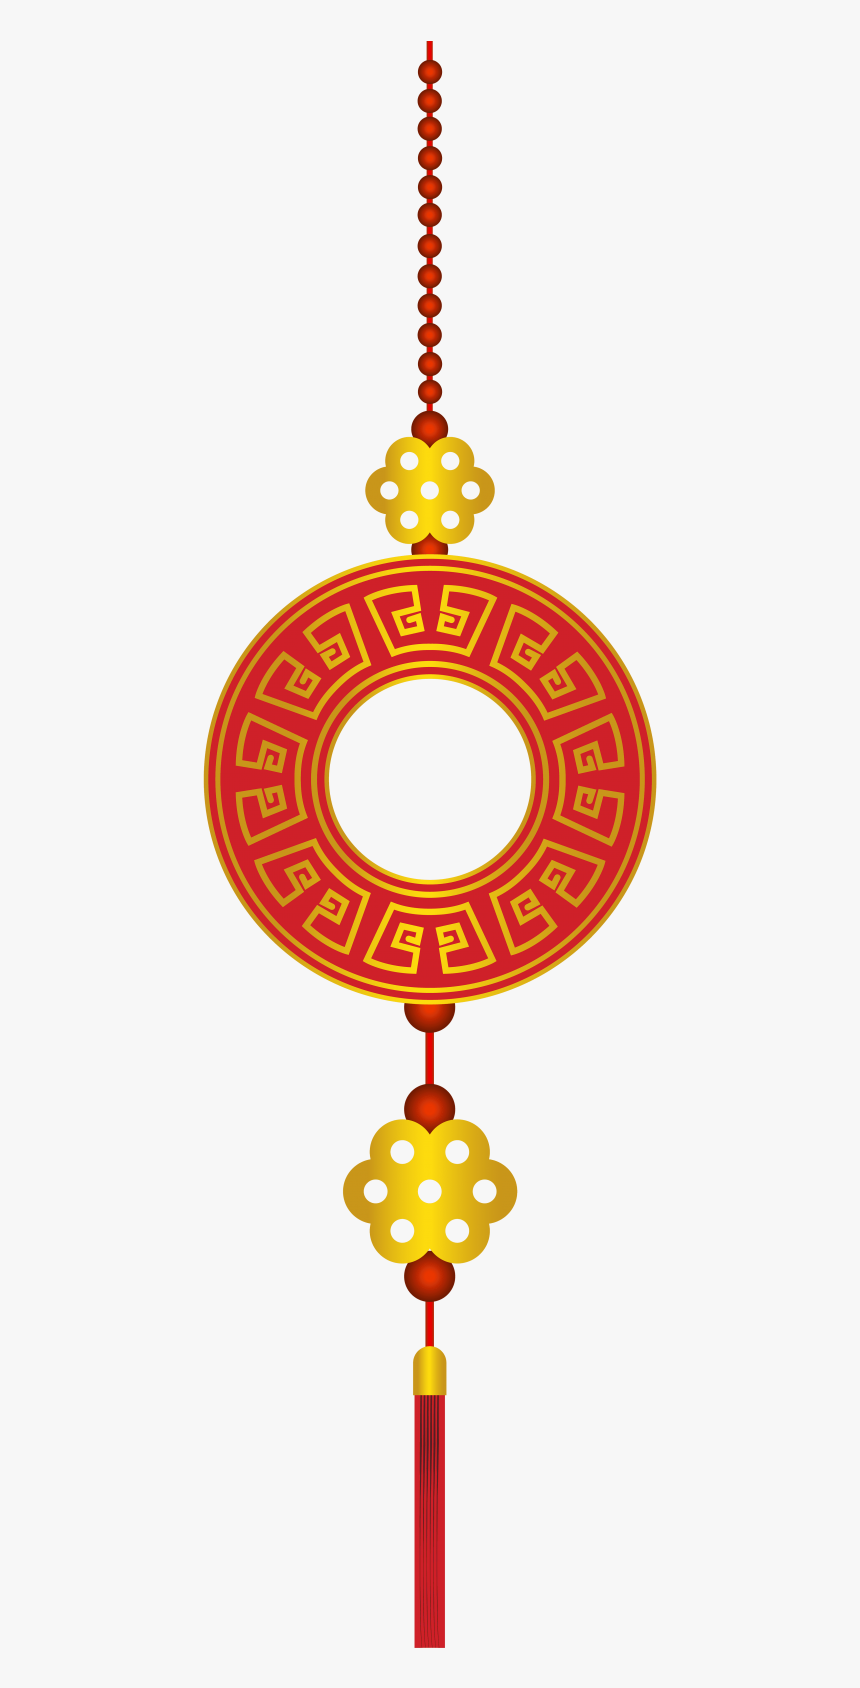 Decor Png Free Images - Chinese New Year Lampion Png, Transparent Png, Free Download